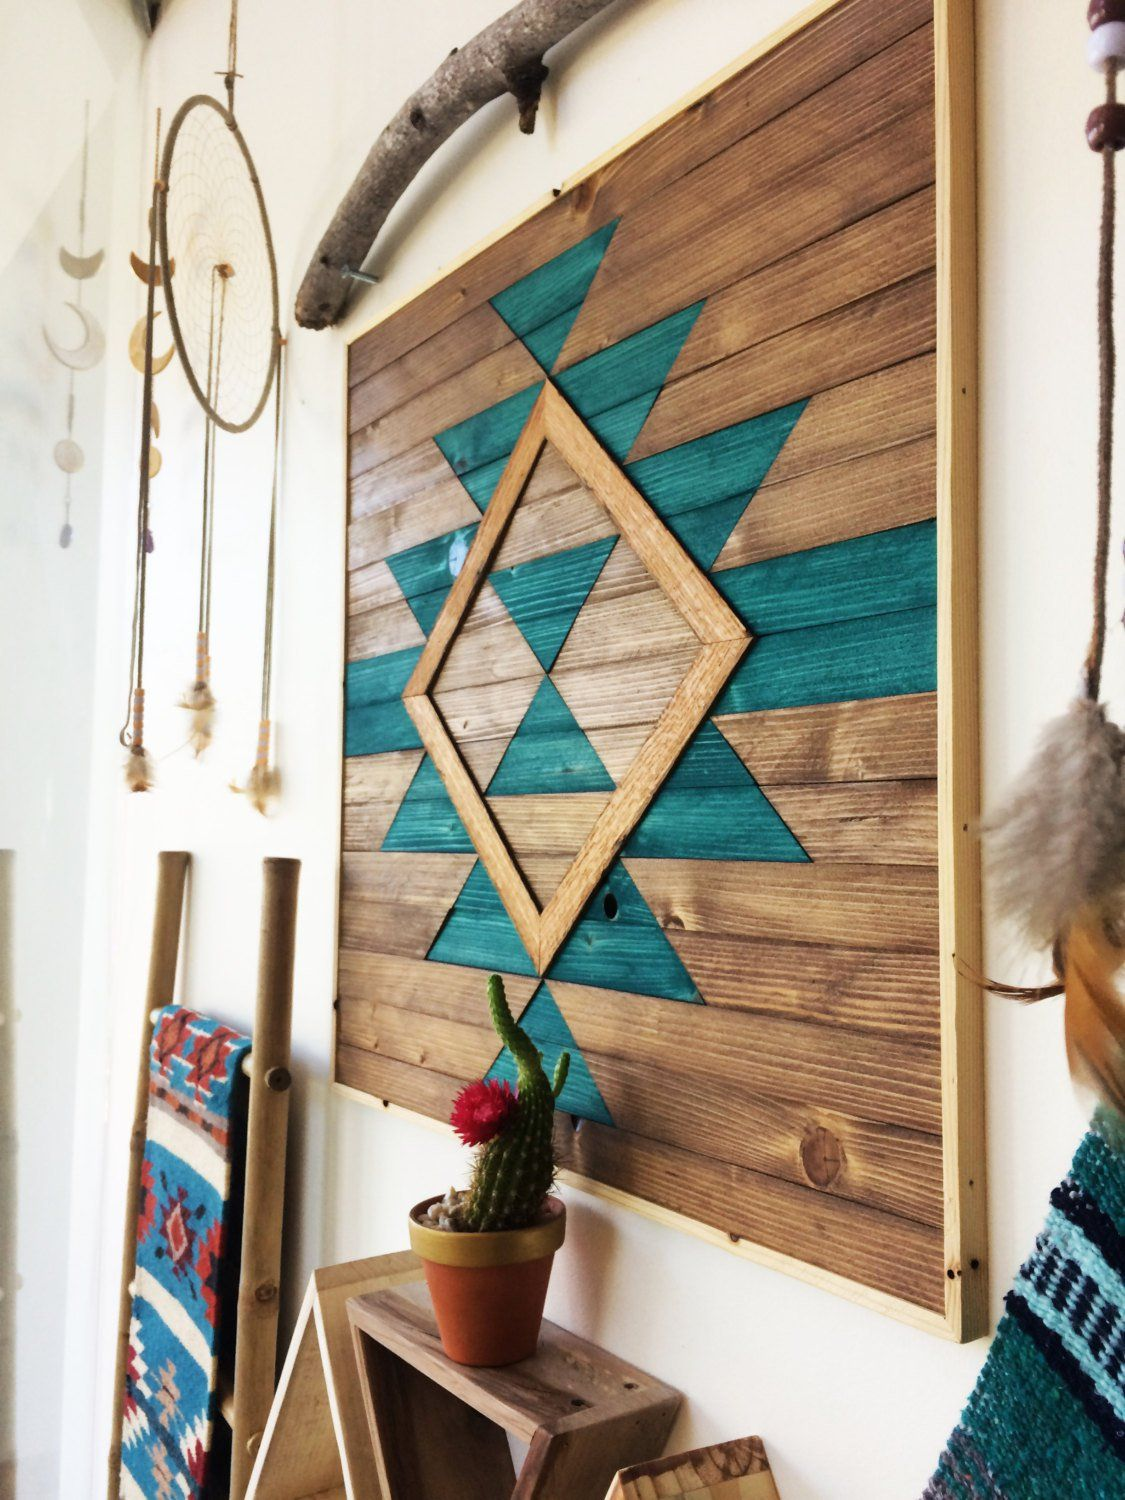 18 Slick Handmade Reclaimed Wood DIY Projects That You'll Do Right Away - 18 Slick Handmade Reclaimed Wood DIY Projects That You'll Do Right